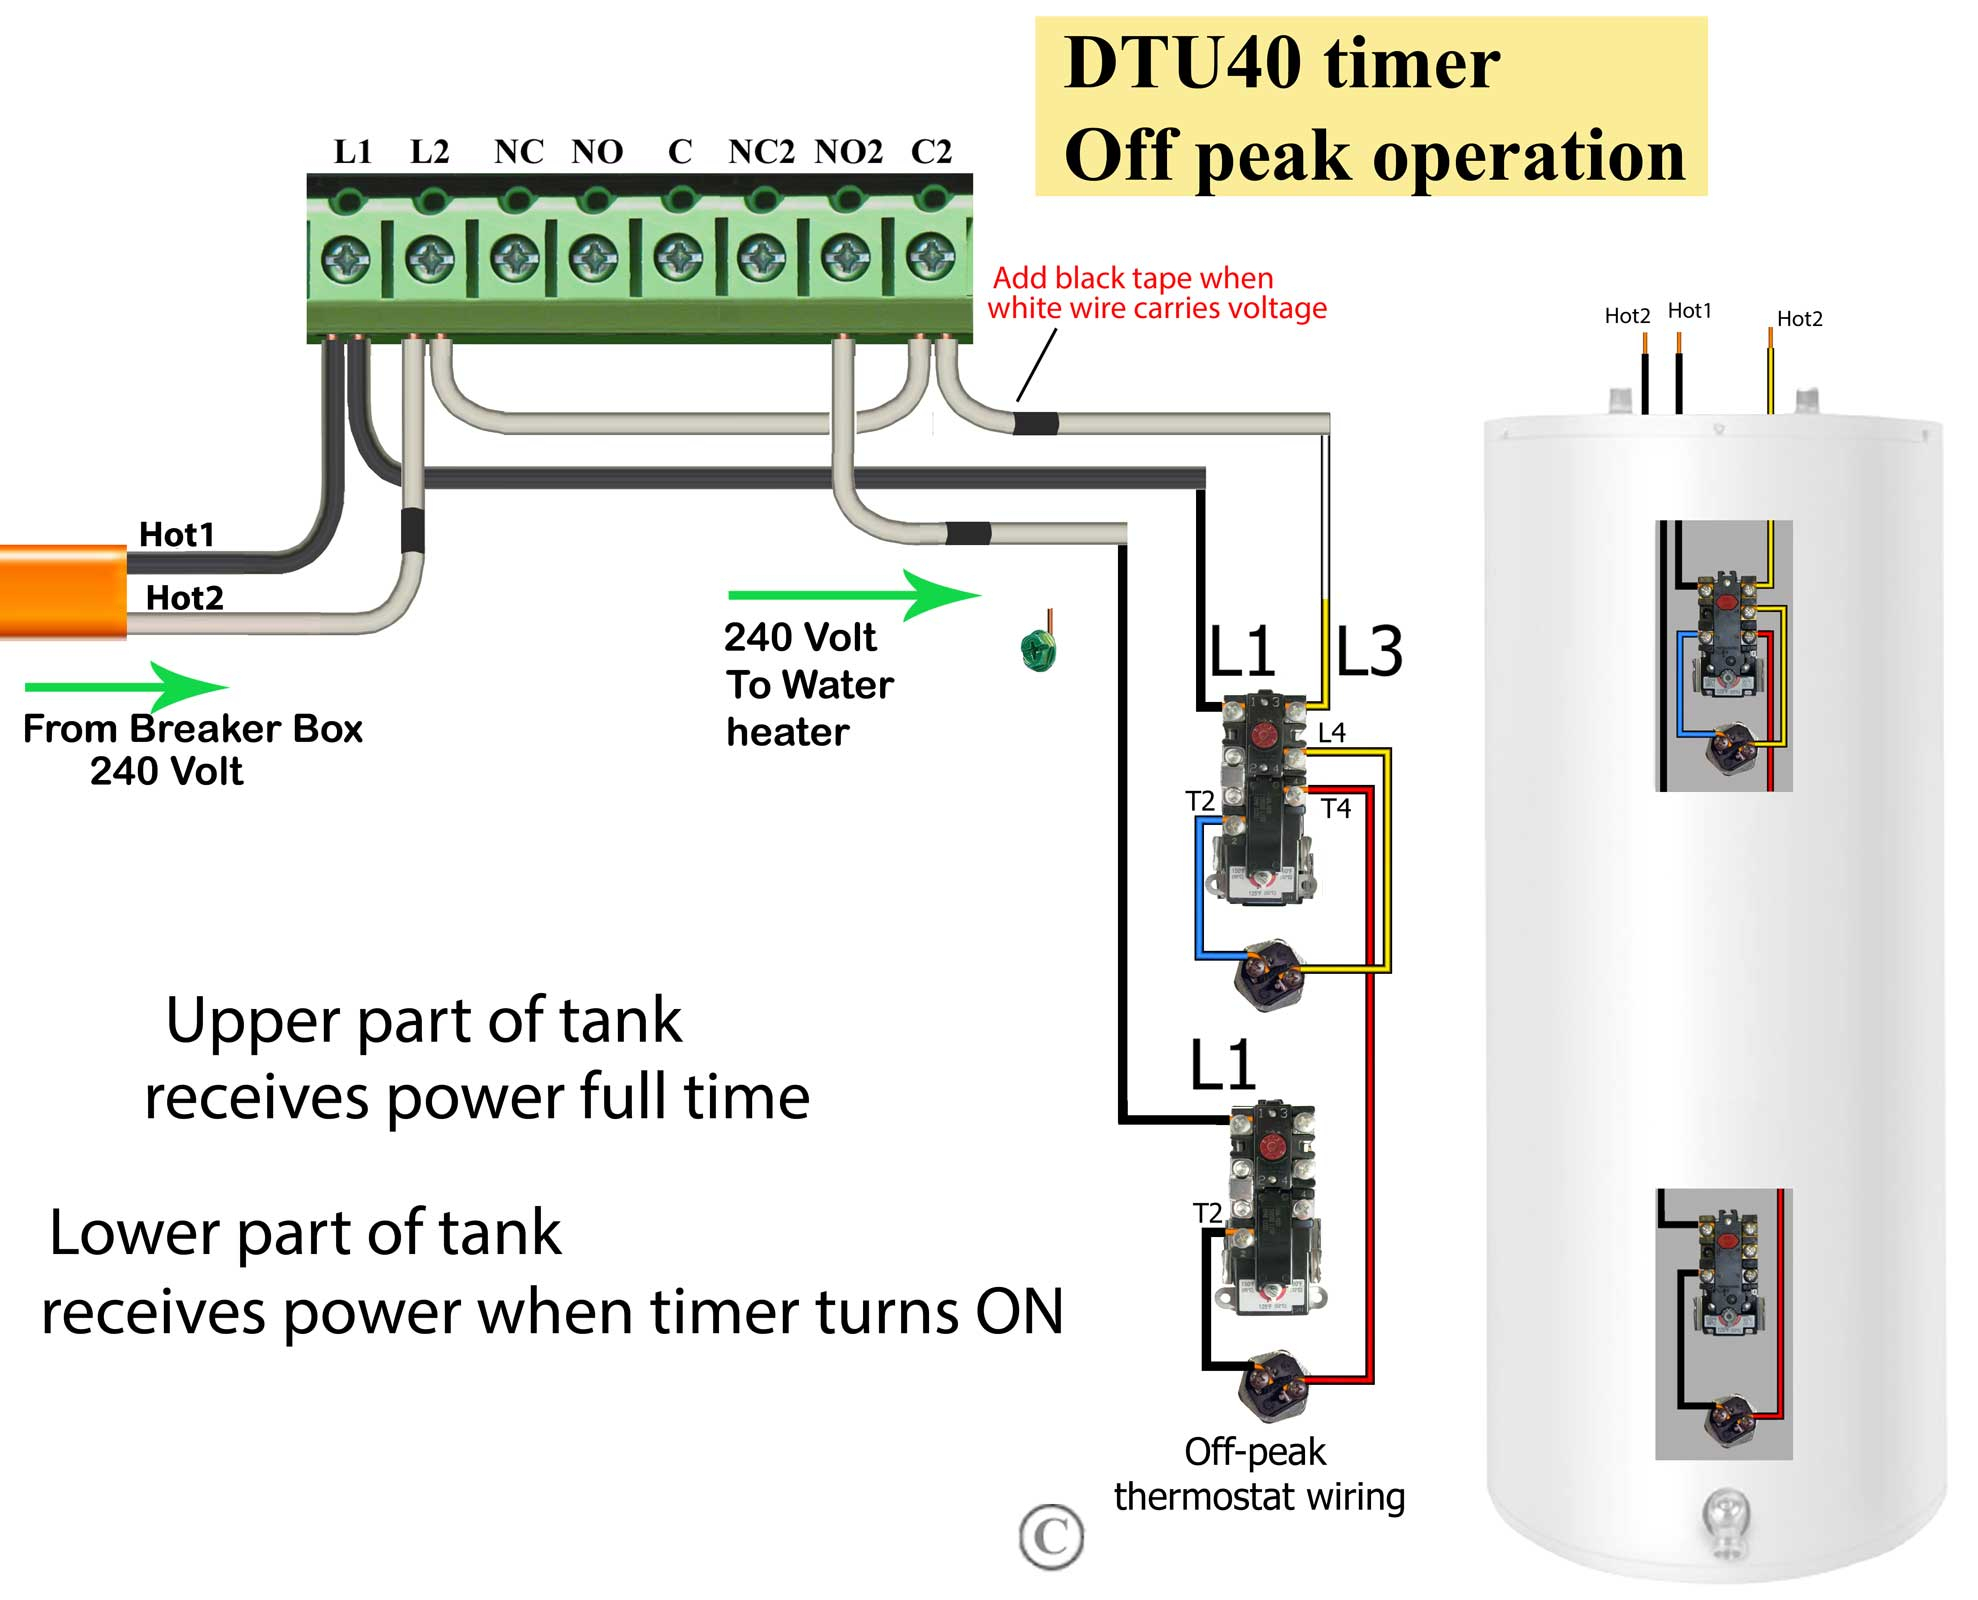 Electric Water Heater Wiring Diagram | Wiring Library - Electric Water Heater Wiring Diagram